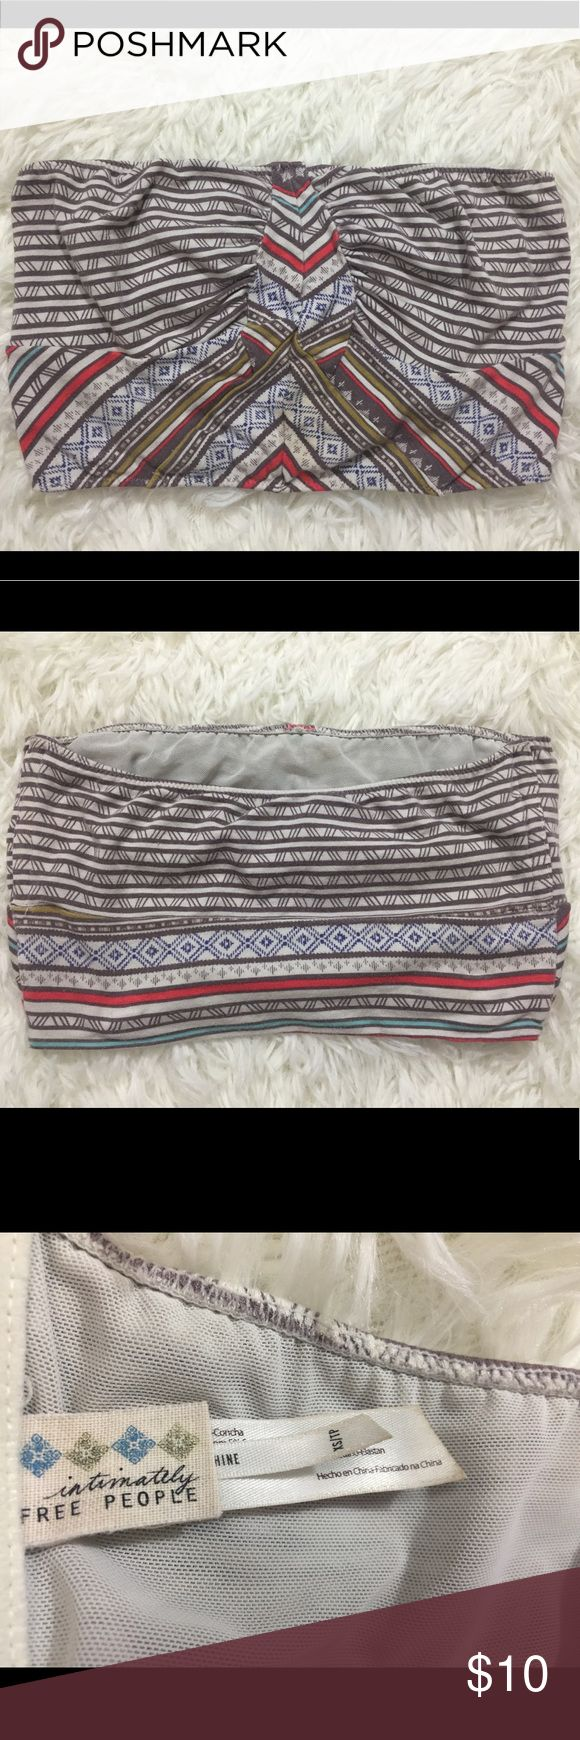 Intimately Free People grey tribal bandeau top XS Gently worn Intimately Free People grey and cream bandeau top tube top size XS. Mesh lined on the inside. Lots of stretch. Comes from a smoke free, pet free home. Please ask all questions before purchasing. Free People Tops